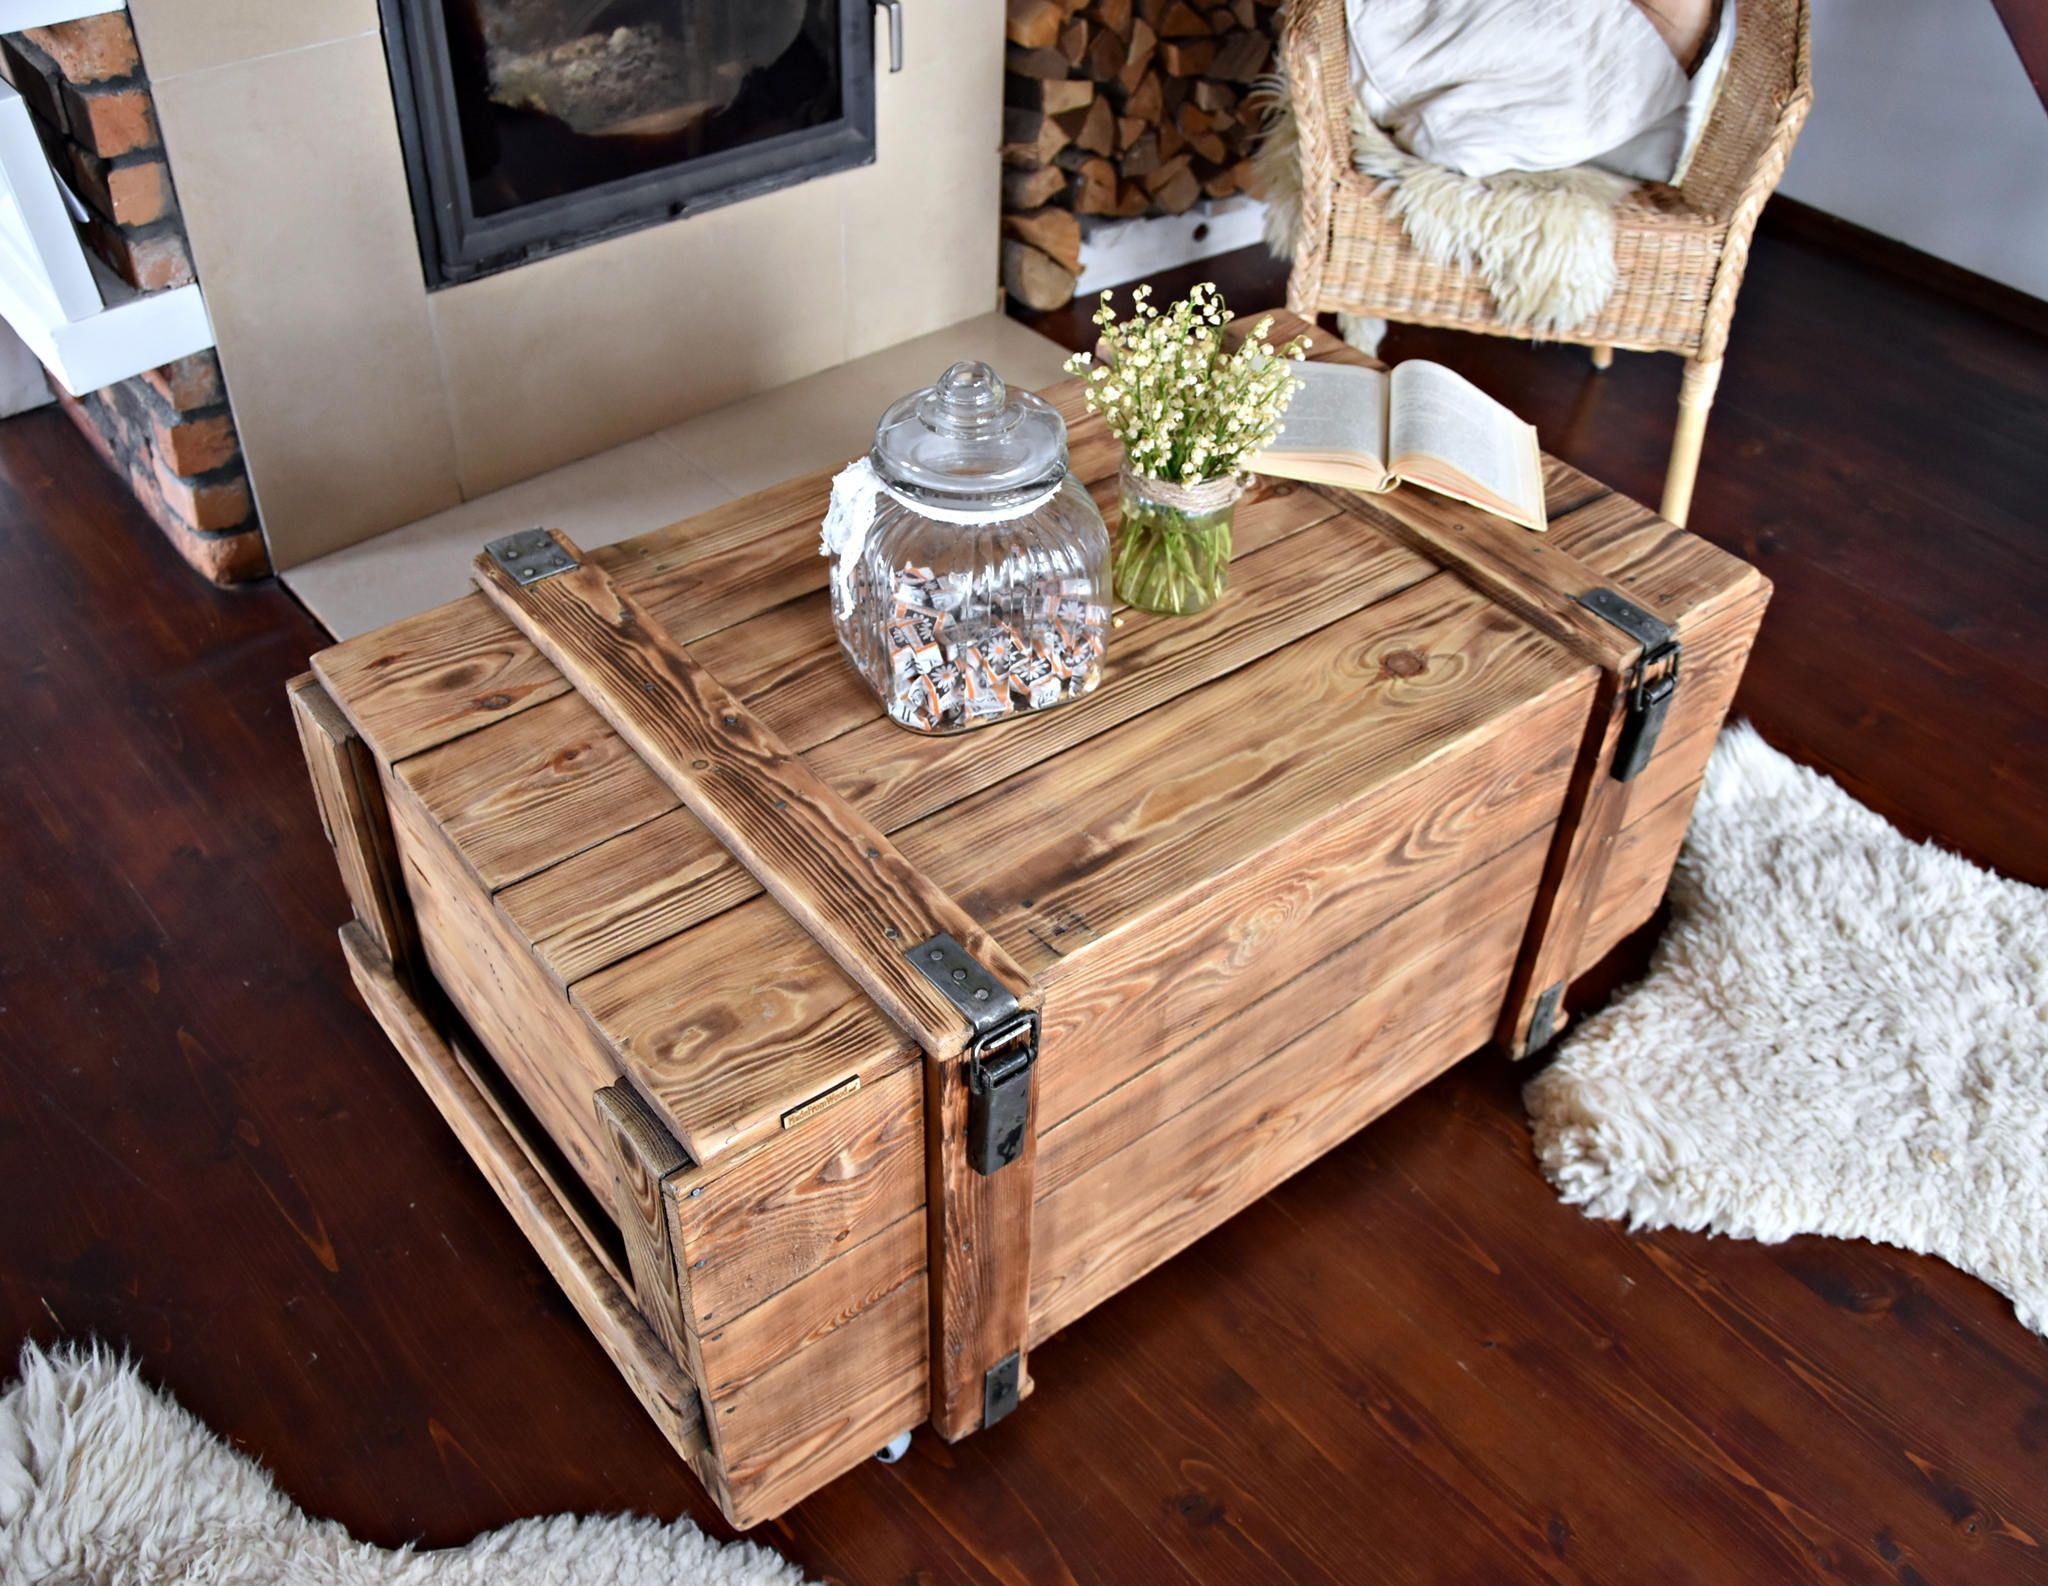 Vintage Antique Old Big Army Military Chest Trunk Box Coffee Table Shabby Chic Brown Cottage Chic Loft Indust Shabby Chic Coffee Table Wooden Chest Trunk Boxes